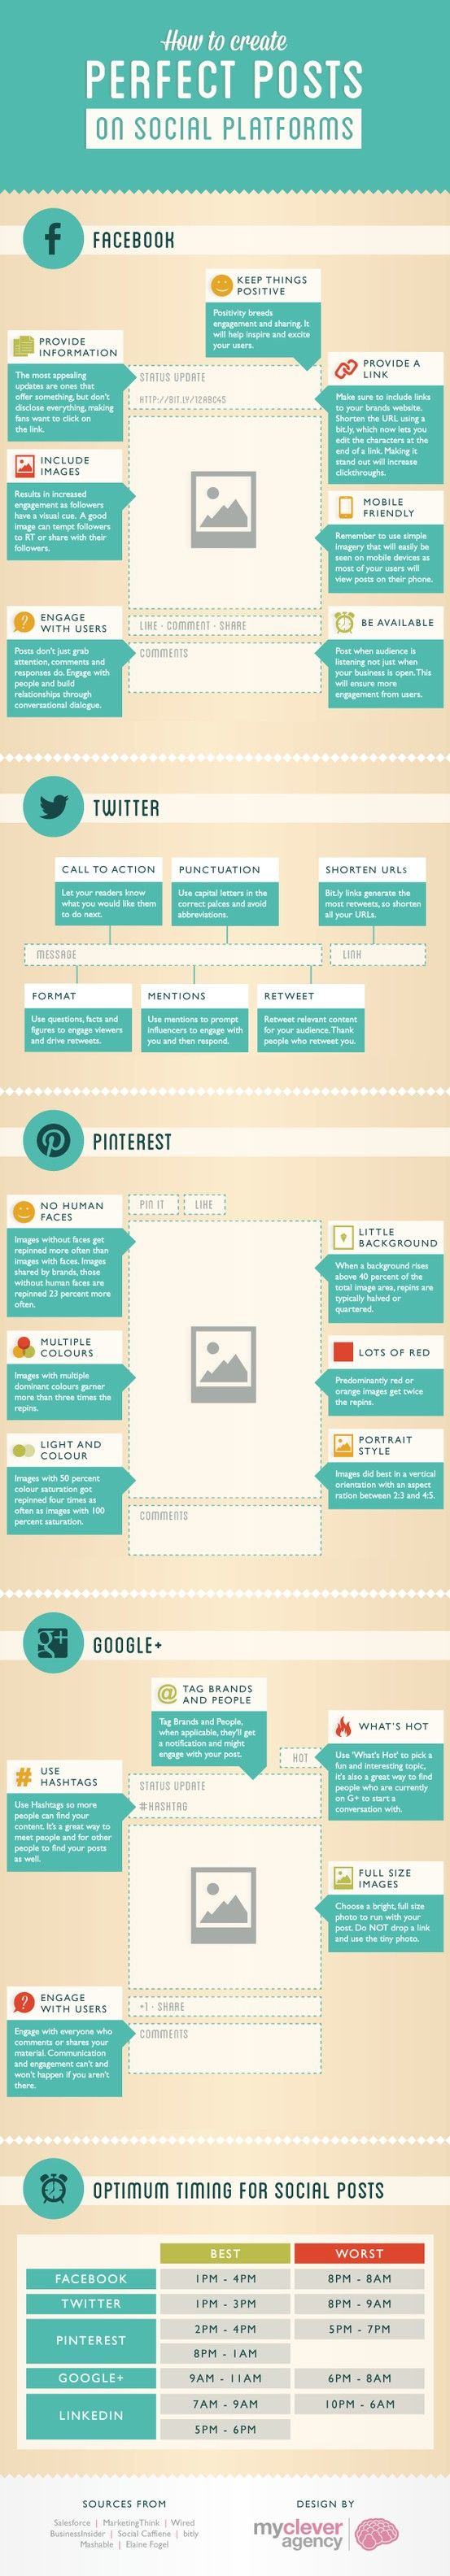 How To Create The Perfect Pinterest, Google+, Facebook & Twitter Posts - mycleveragency have collated a lot of the information and cut through all the jargon and here is a basic guide to what they think makes the 'perfect post' social media post.